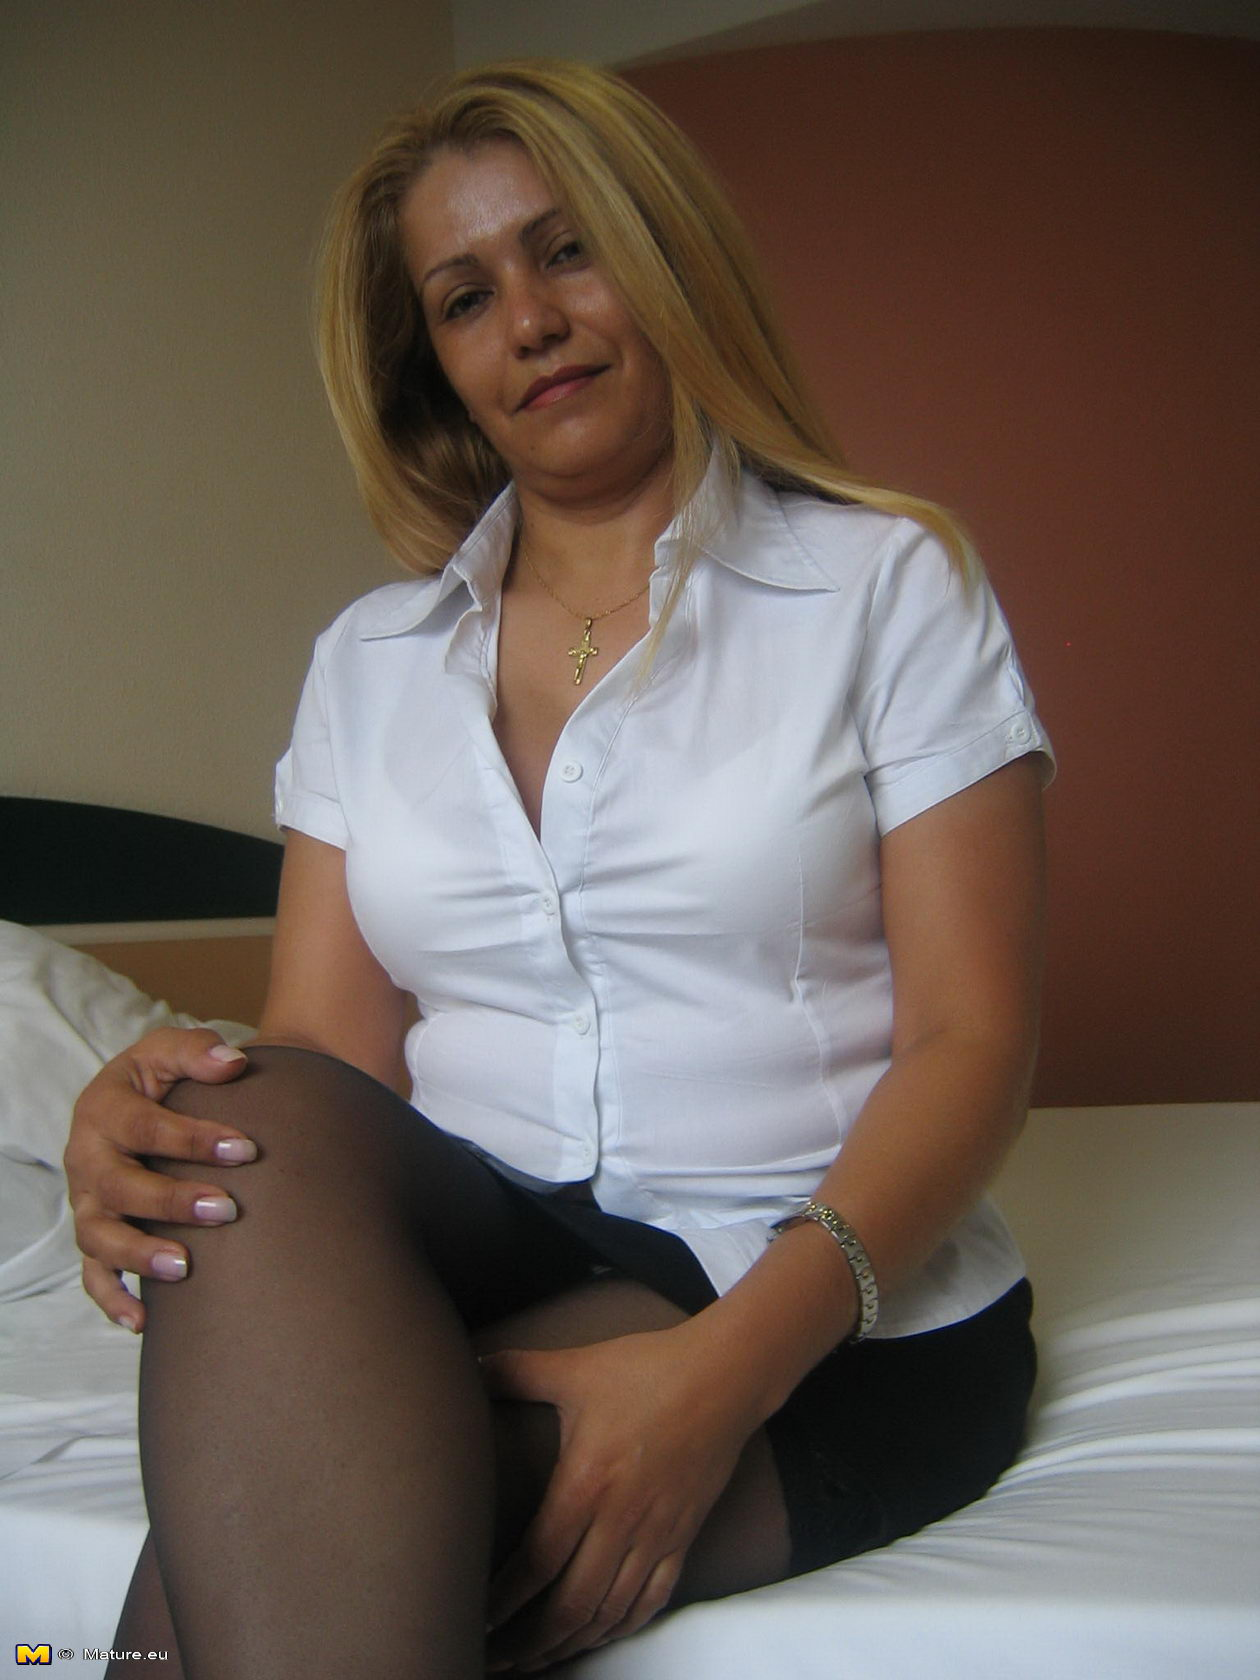 Granny having sex with young boy in hotel 6